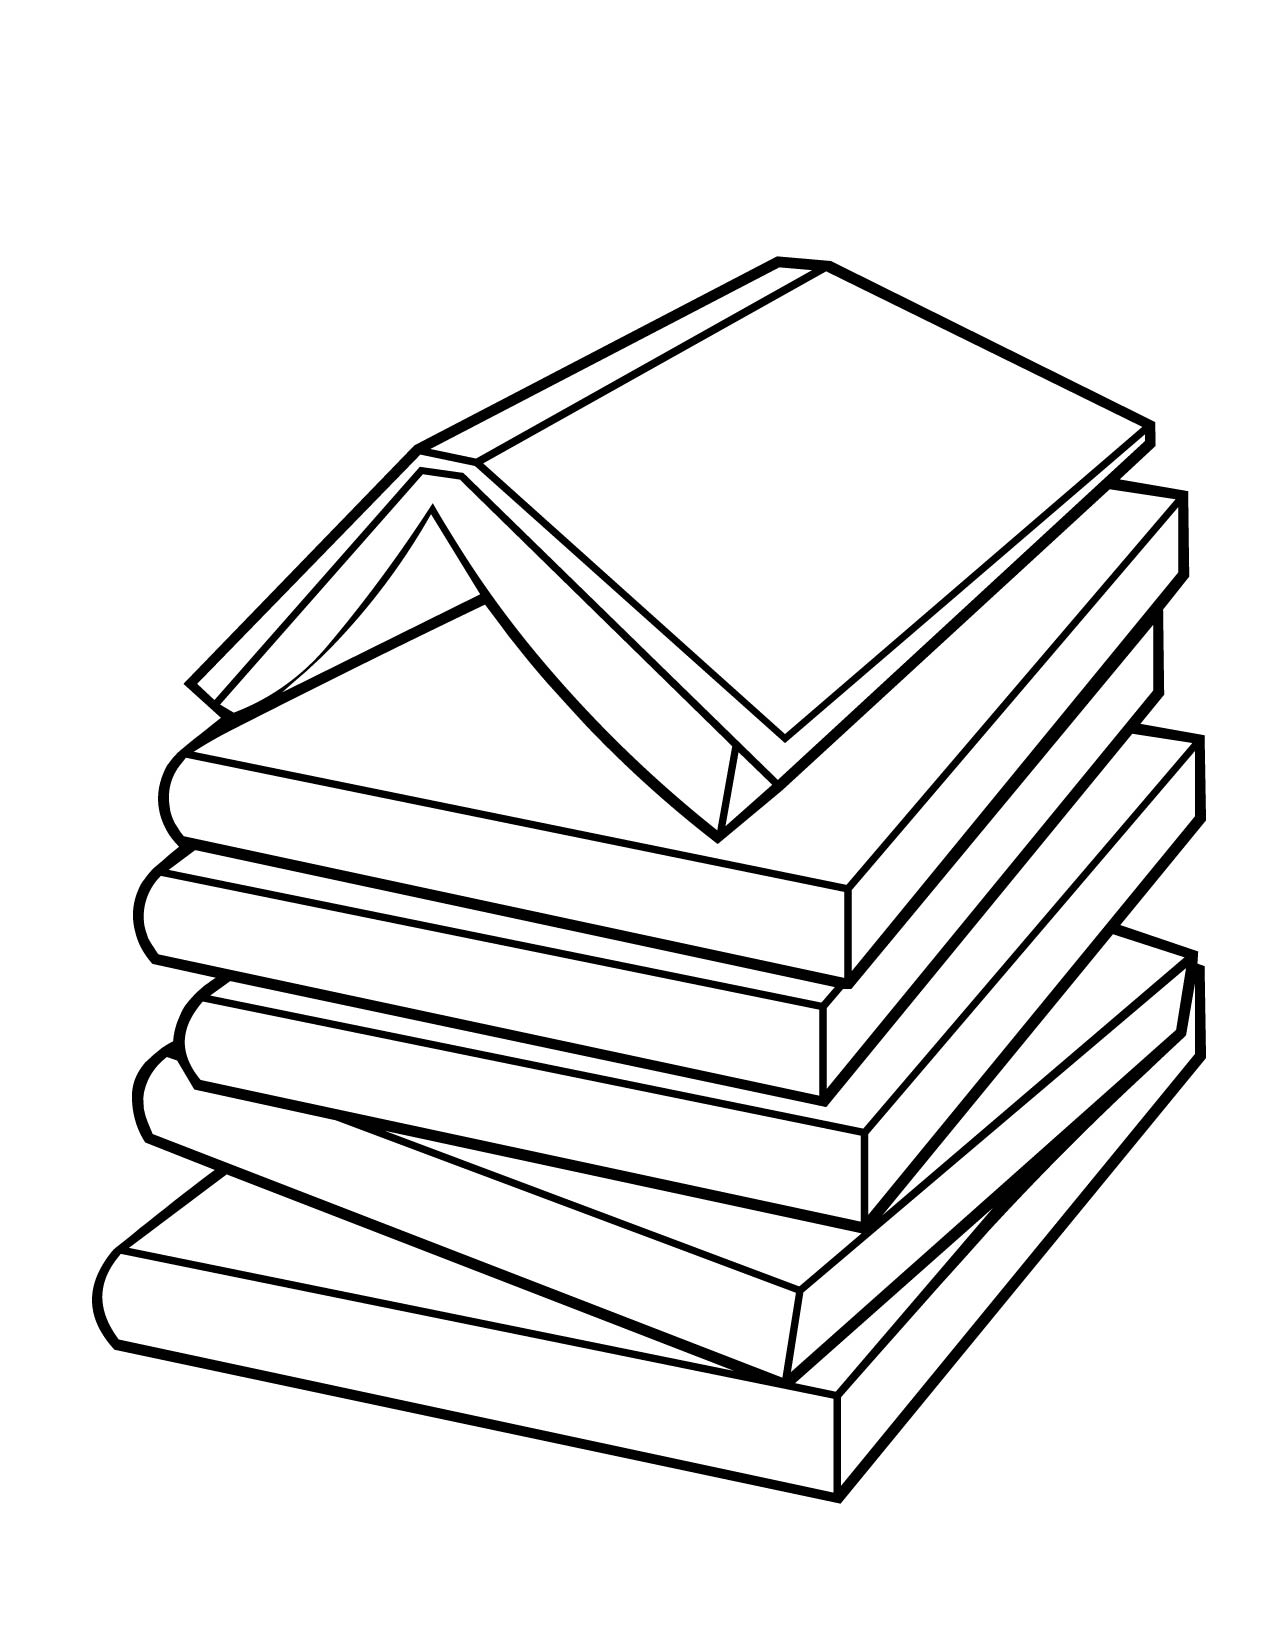 Book Coloring Pages To Download And Print For Free Coloring Page Book